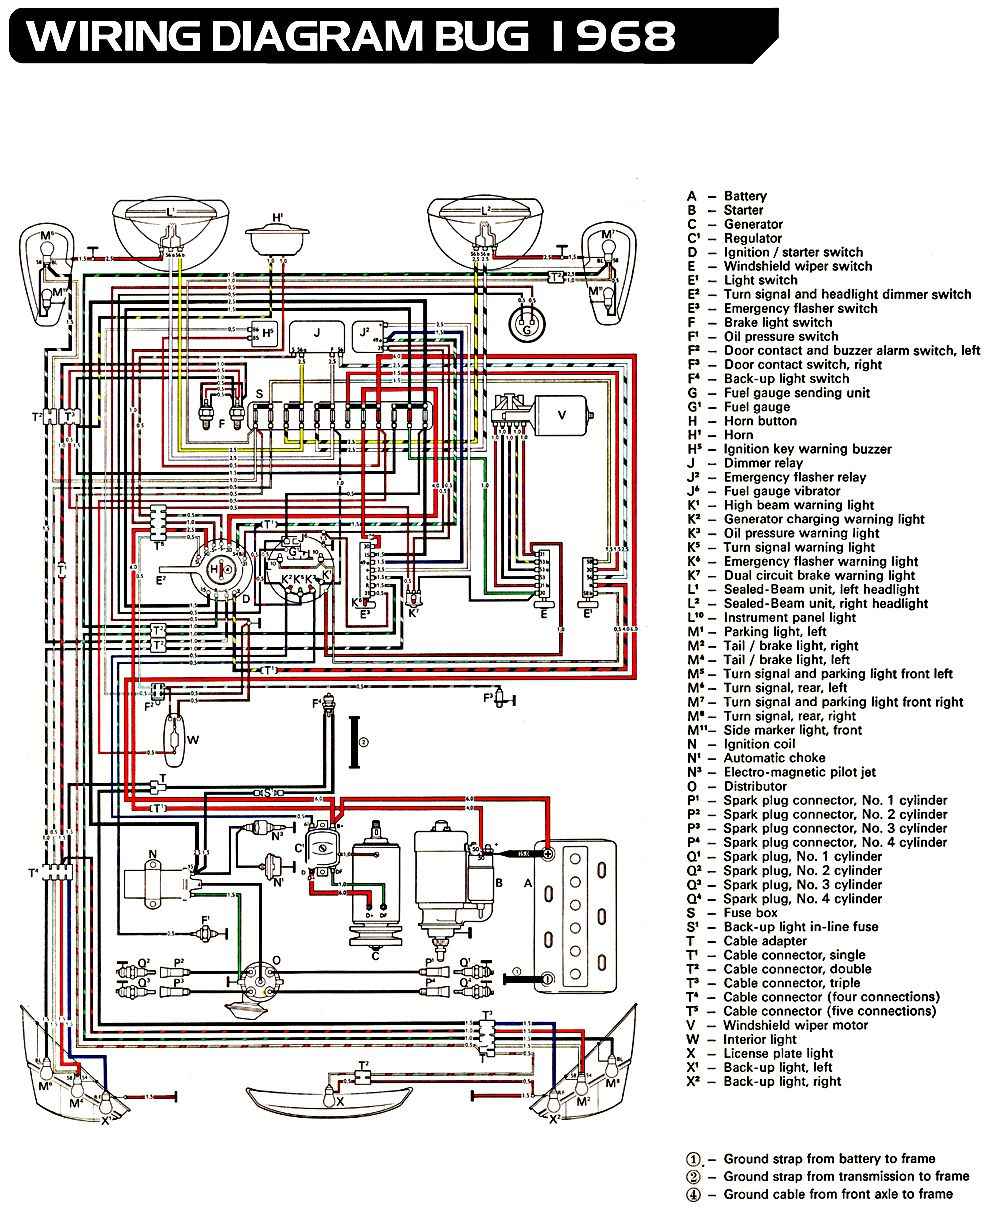 3a1908112d3826270ed5e3be362292bf vw bug ignition wiring diagram 73 vw wiring diagram free vw ignition wiring diagram at n-0.co